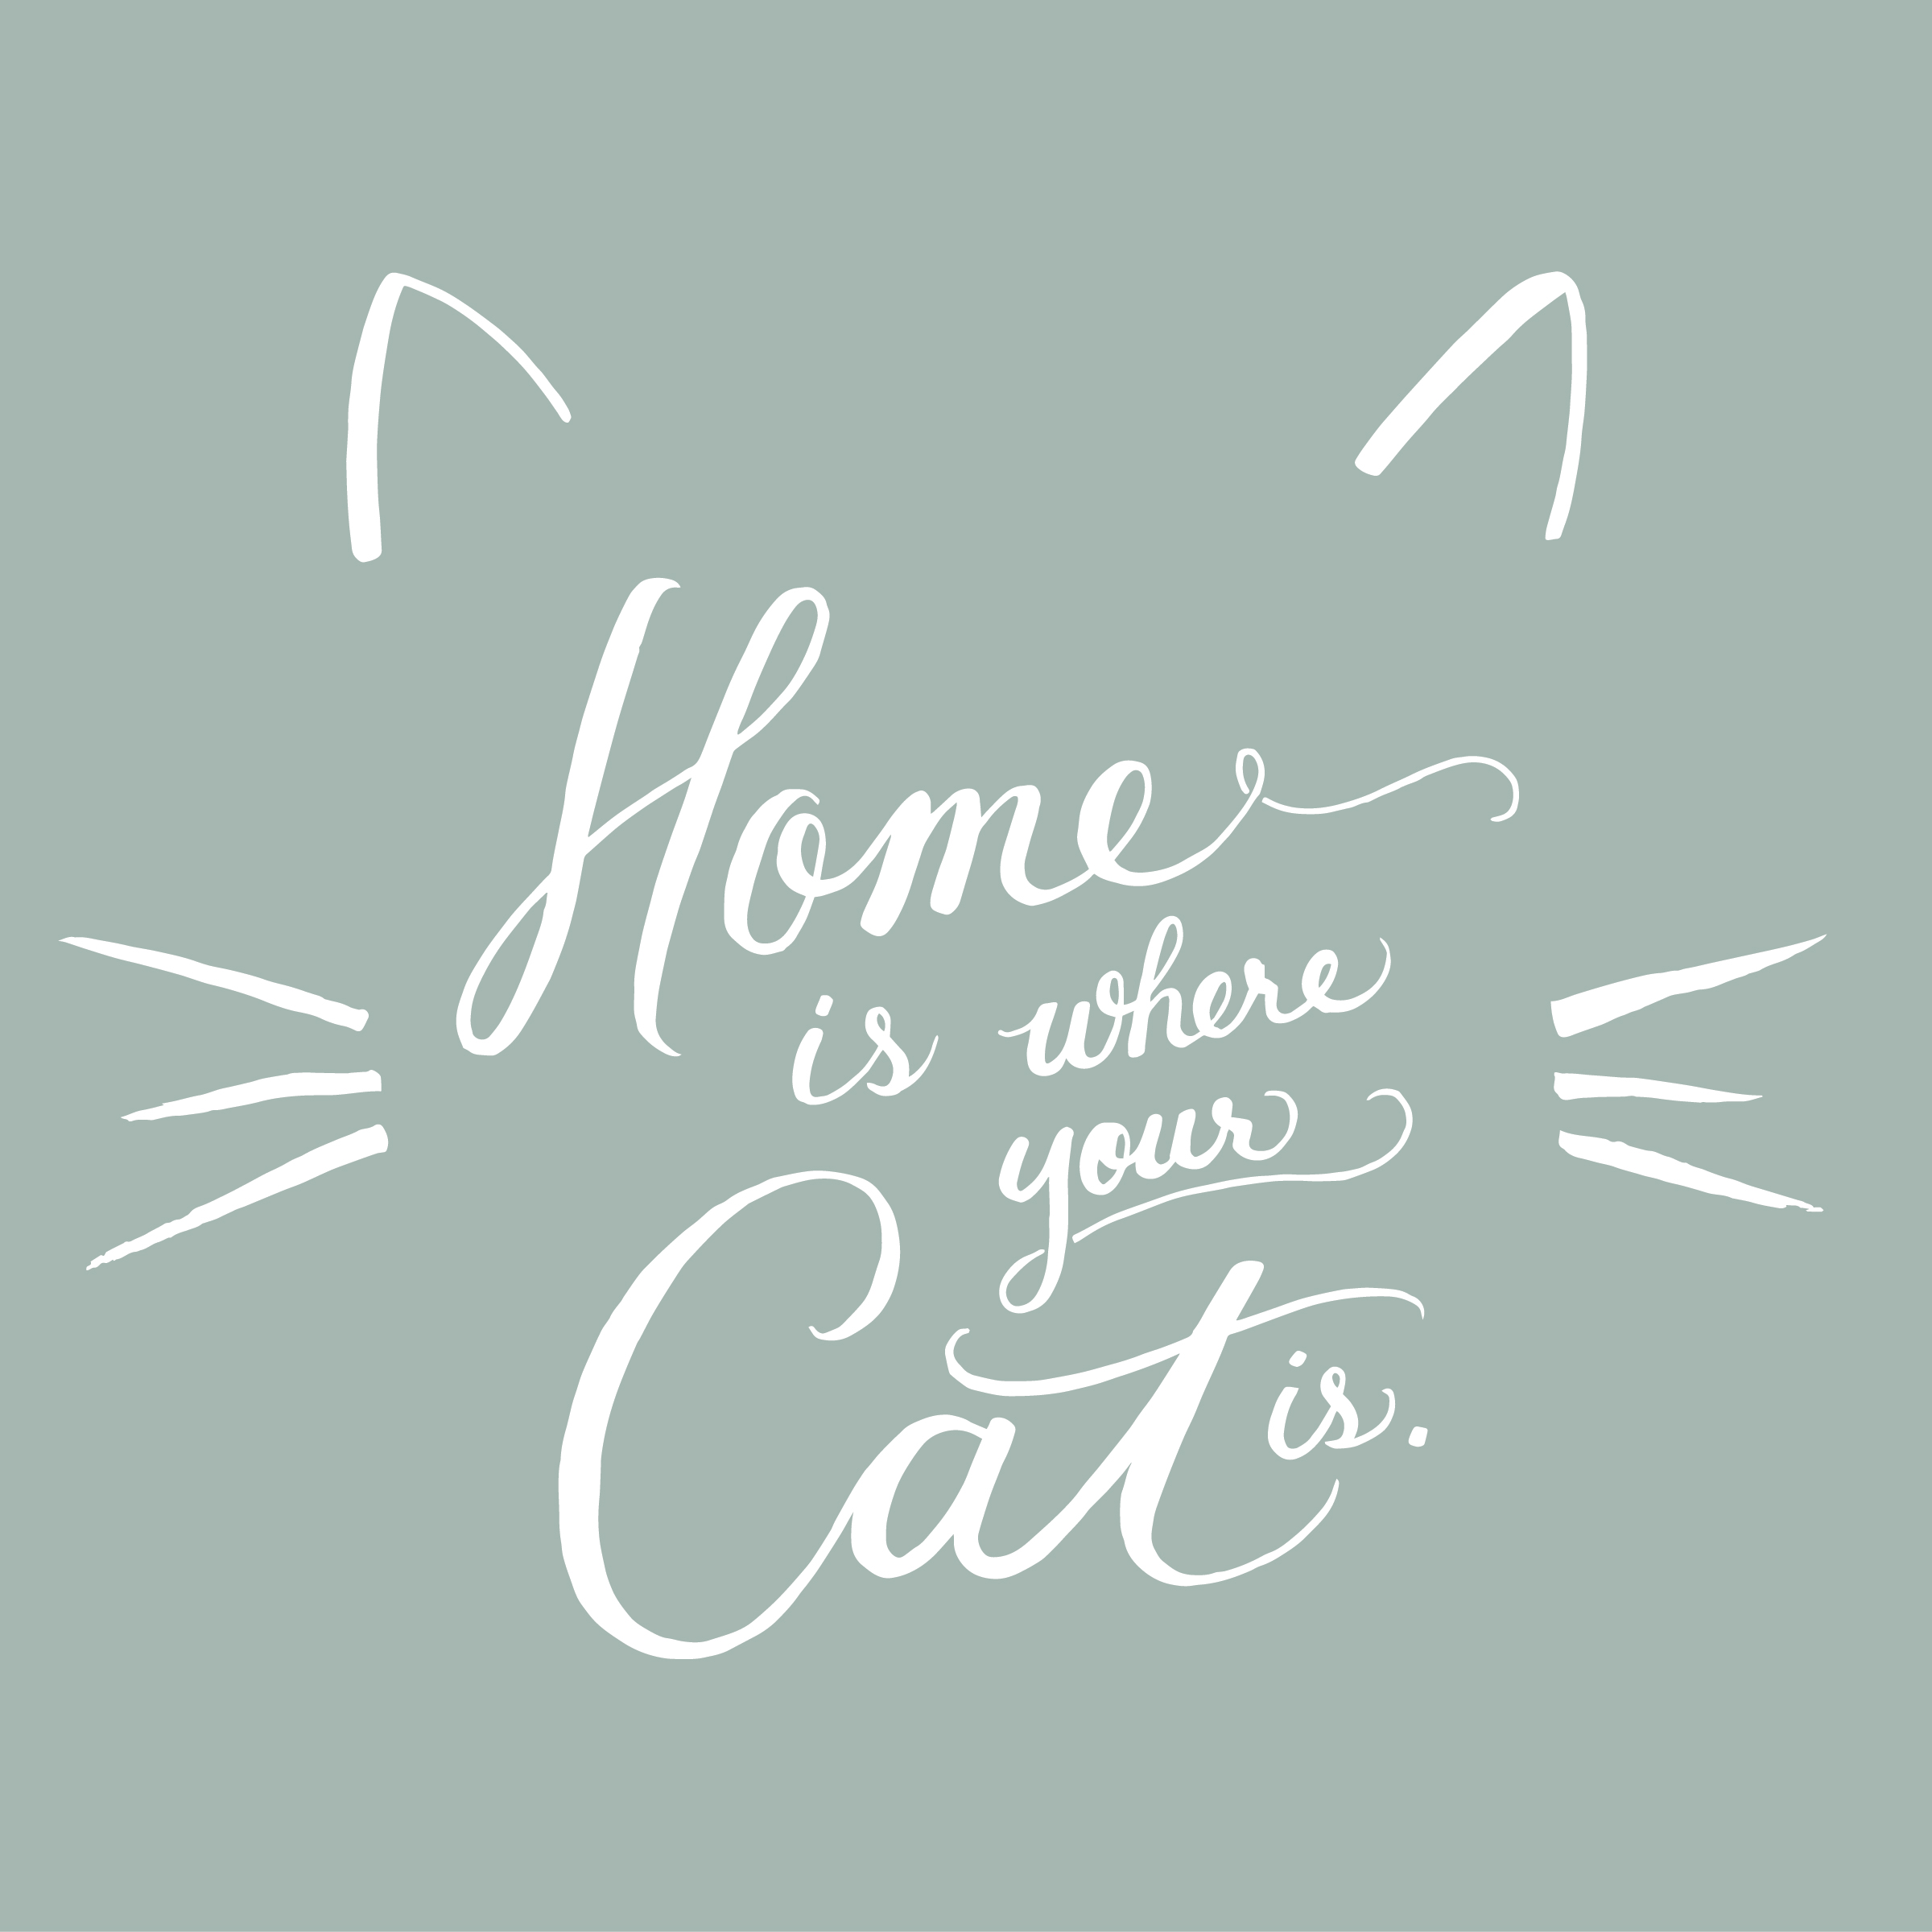 Home Is Where Your Cat Is - andreacrofts.com.jpg